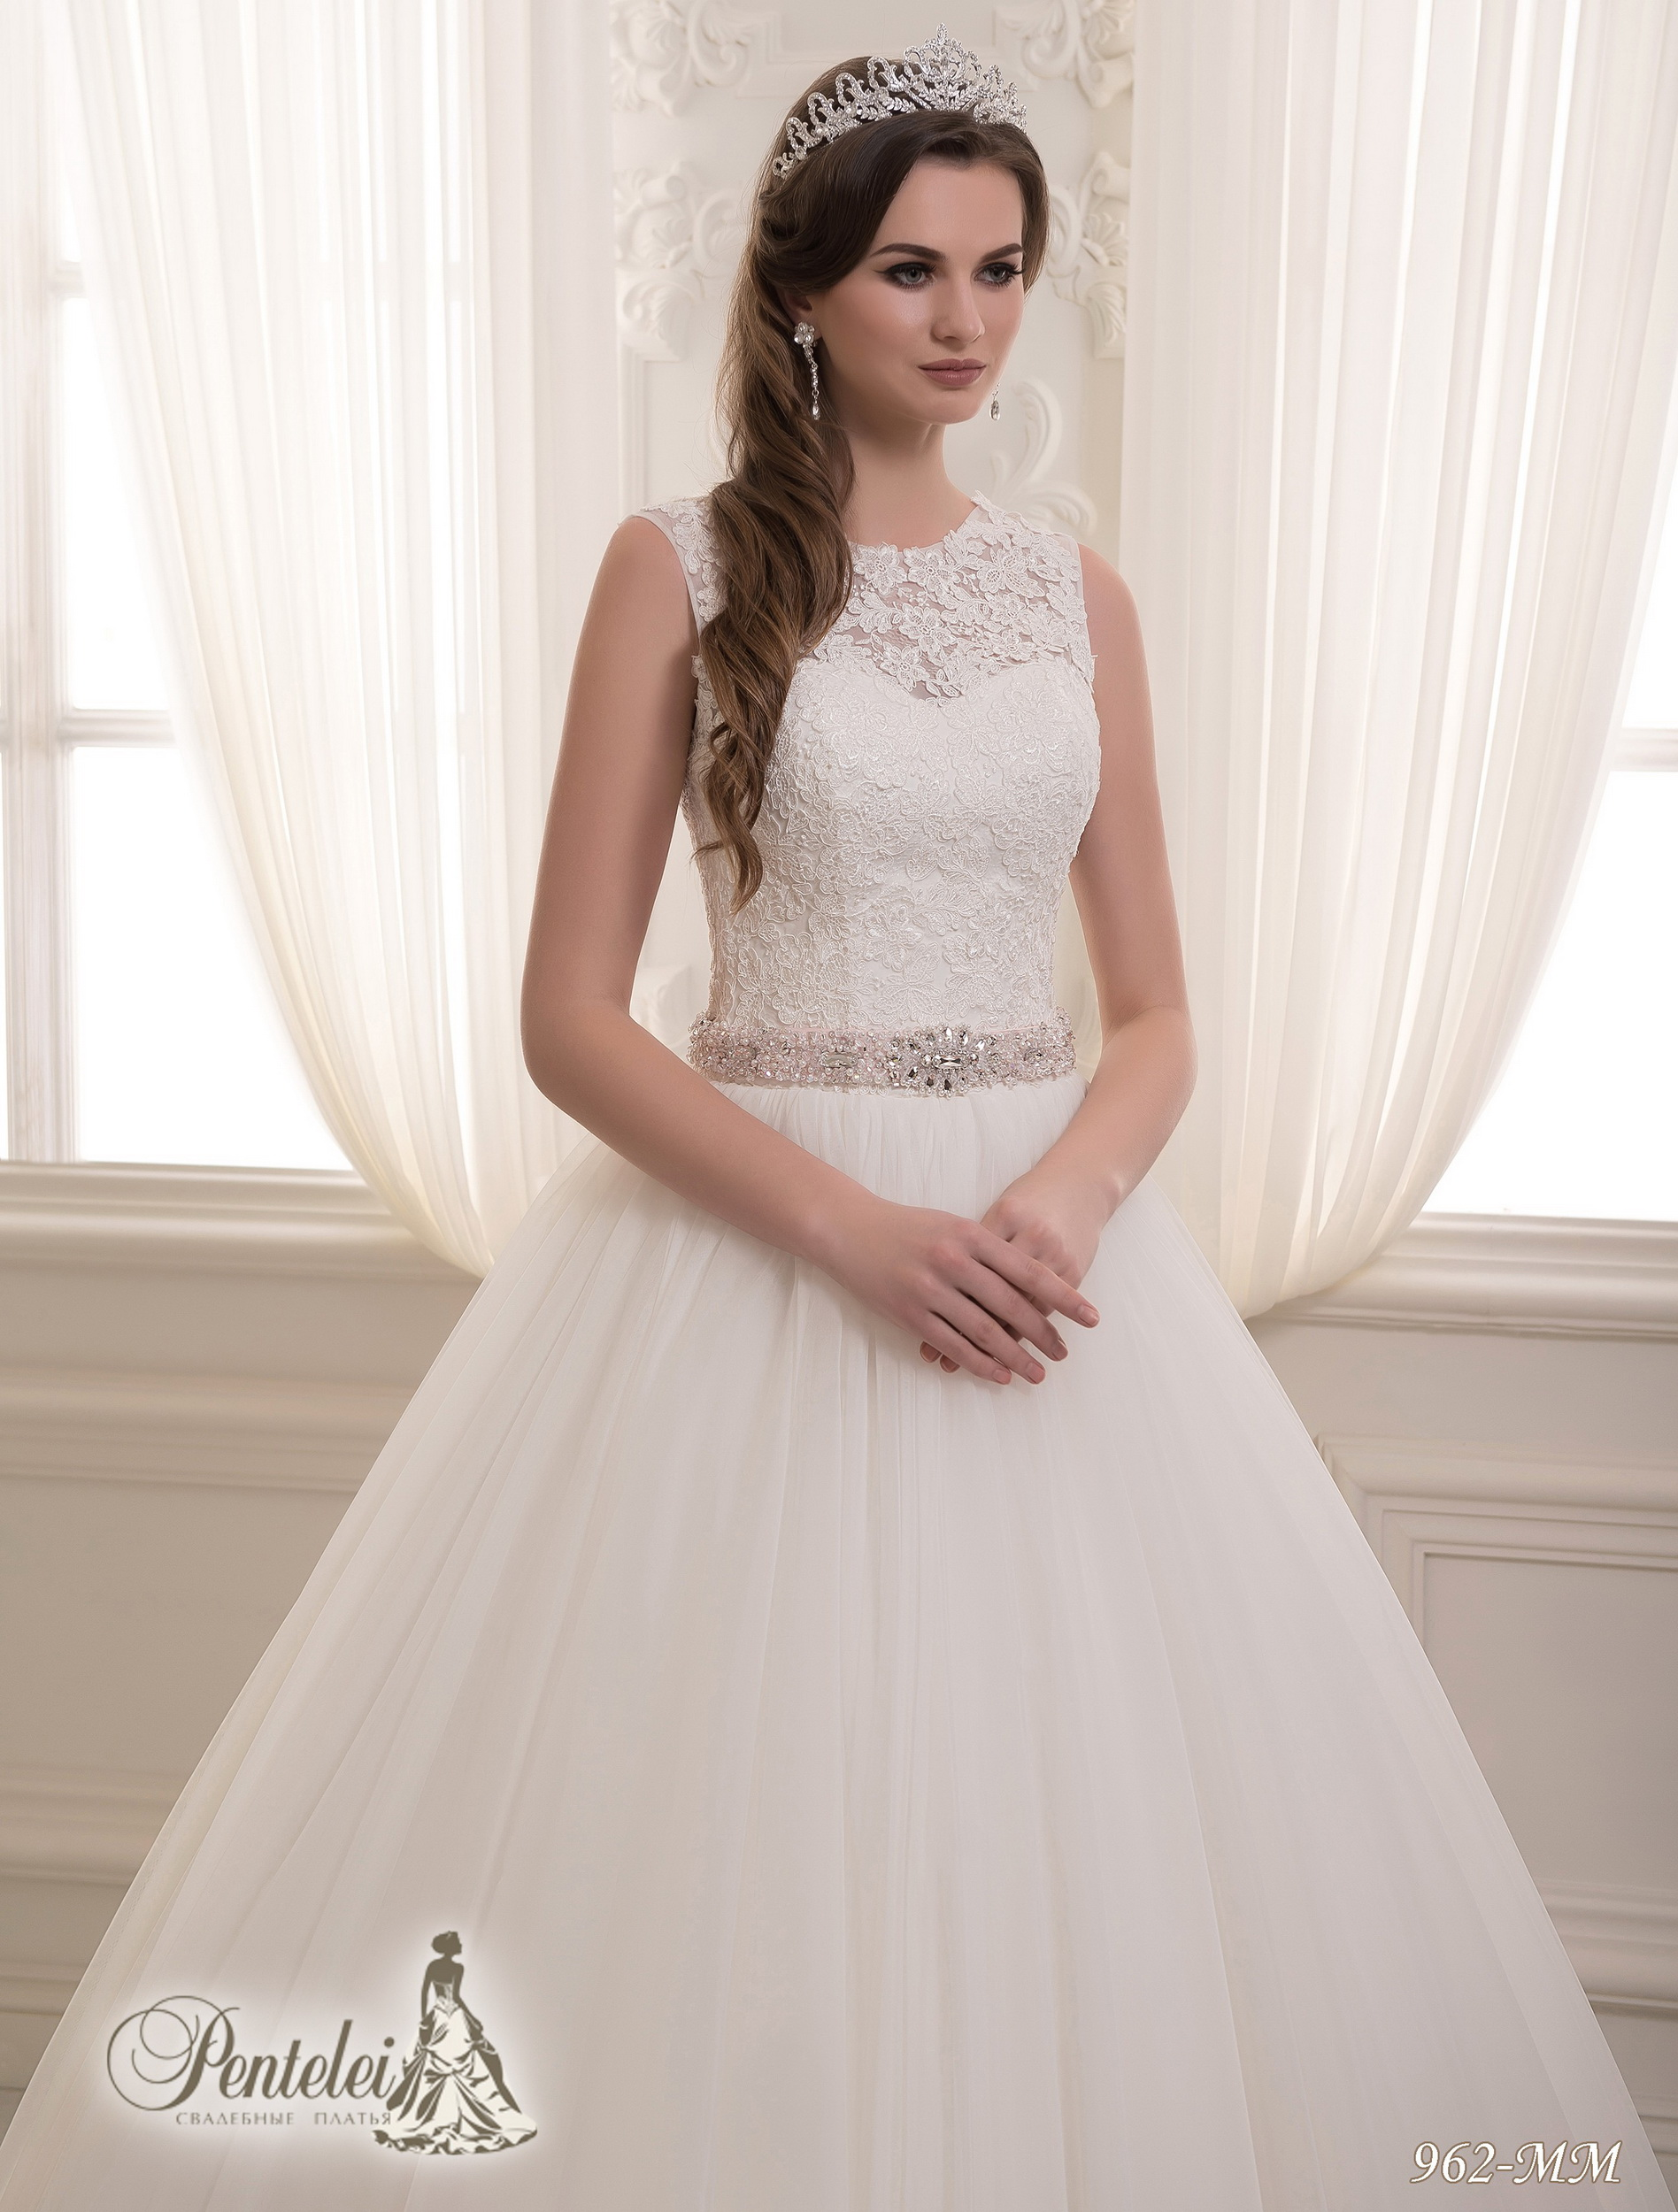 962-MM | Buy wedding dresses wholesale from Pentelei